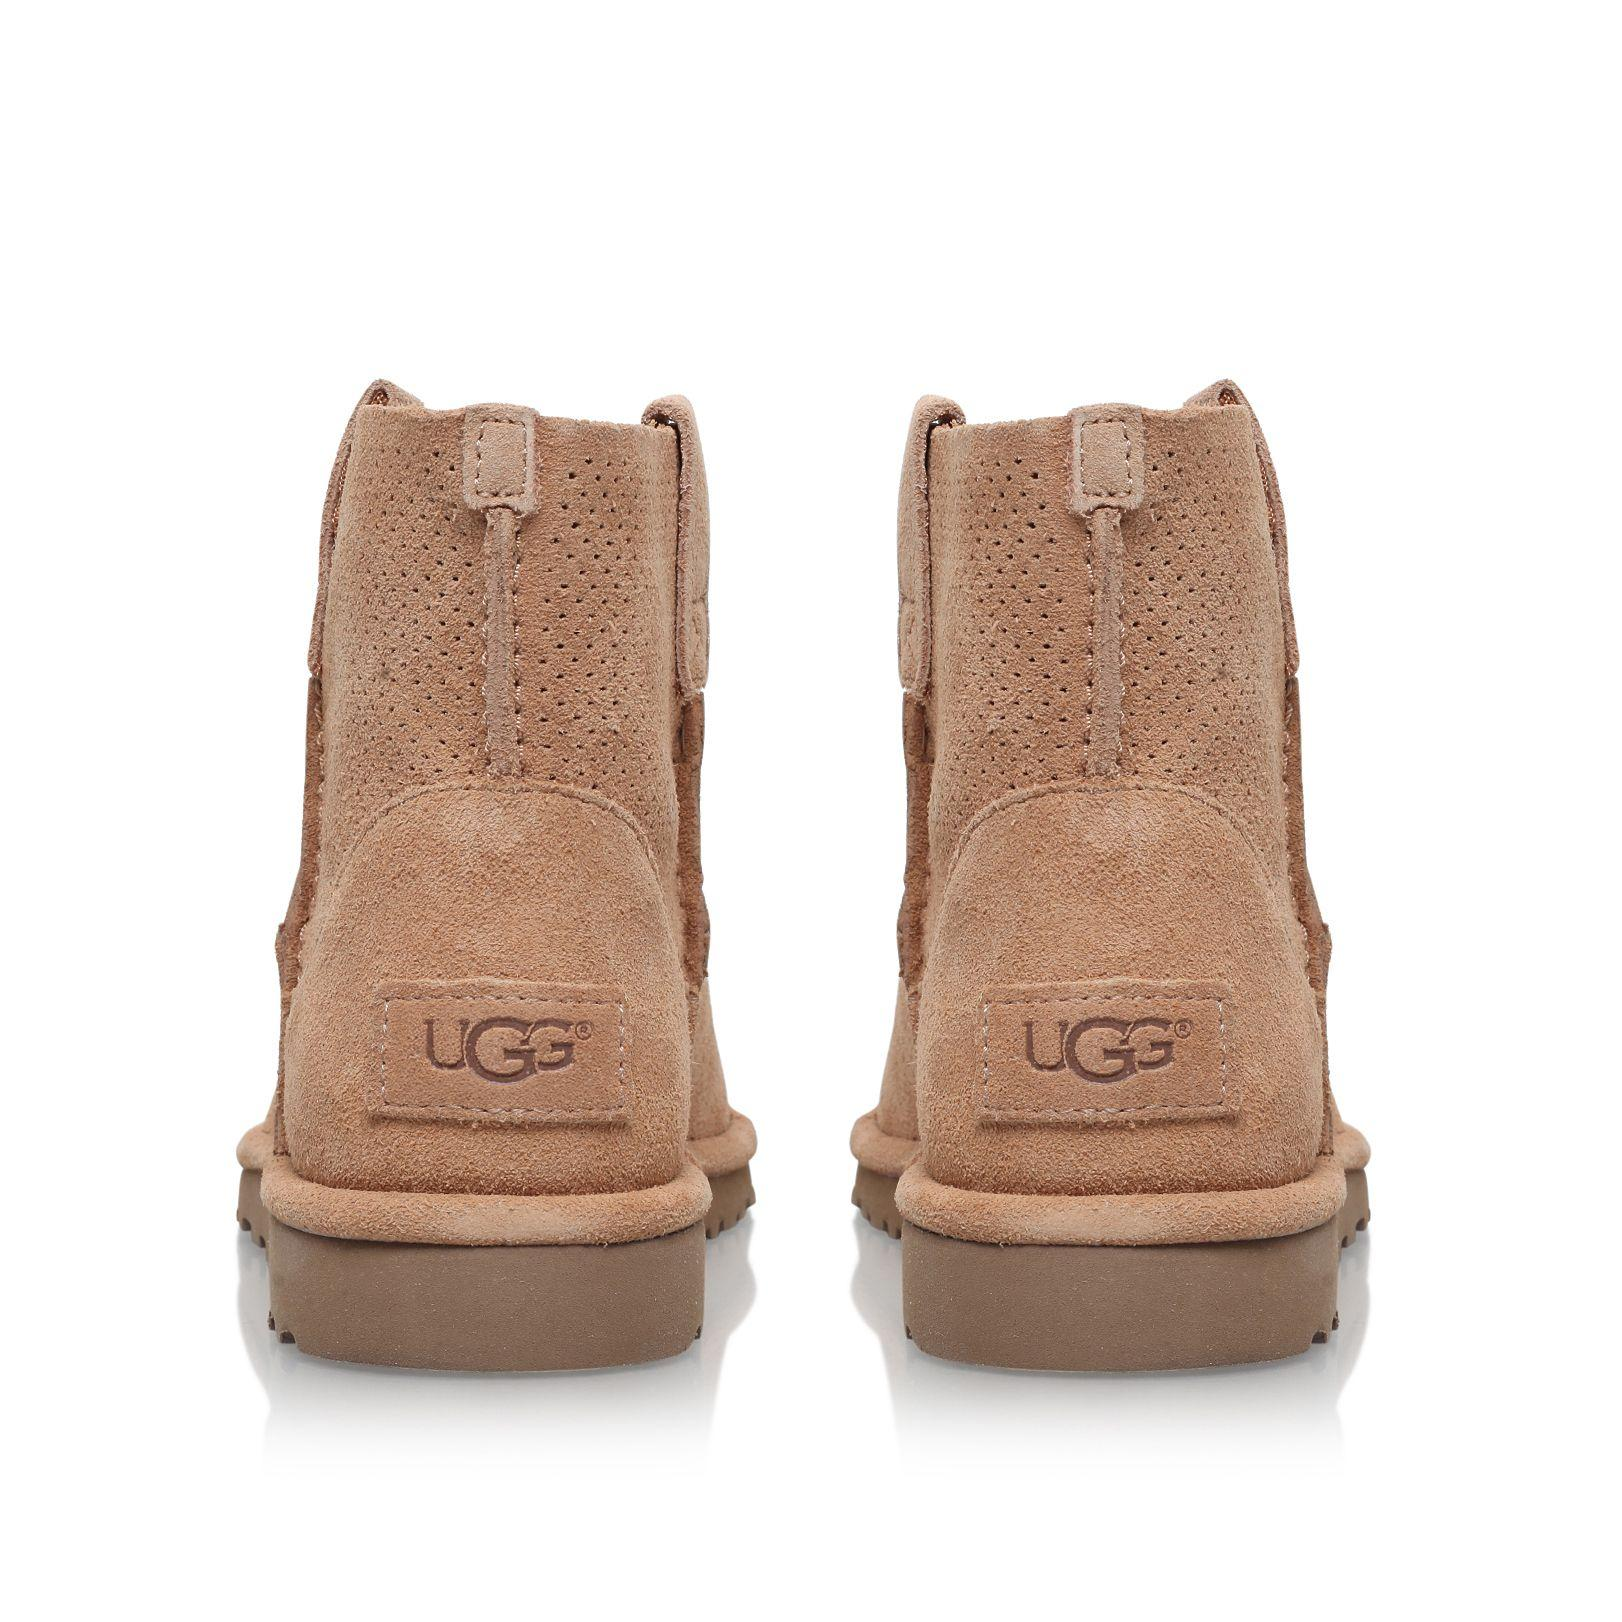 UGG Suede Classic Unlined Mini Perf Ankle Boots in Beige (Natural)